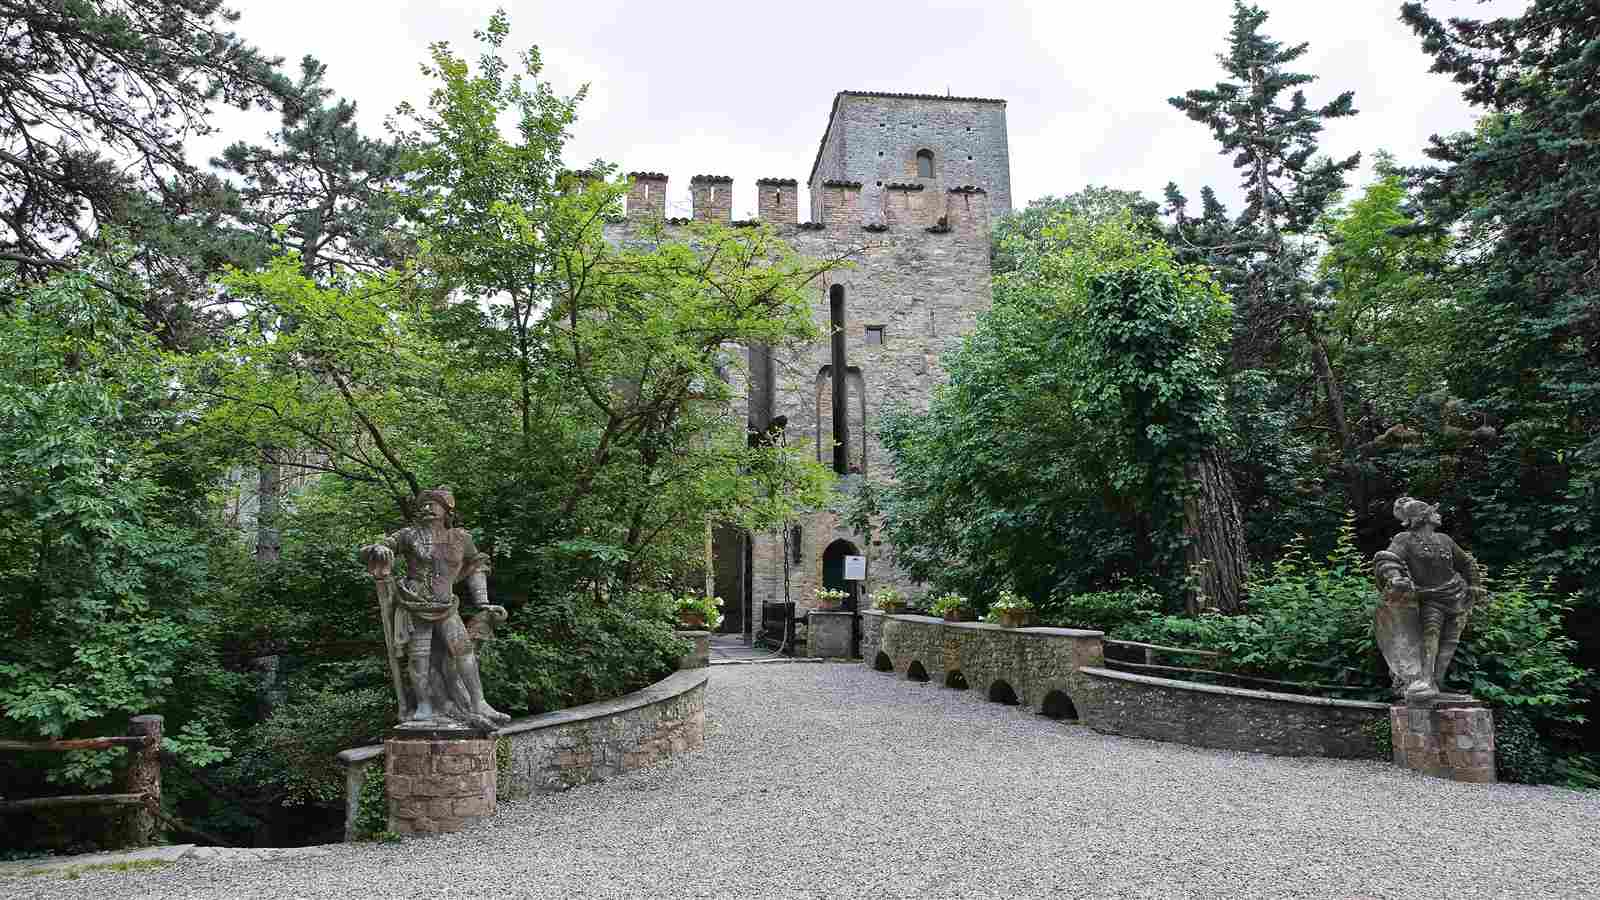 Haunted Castle of Gropparello